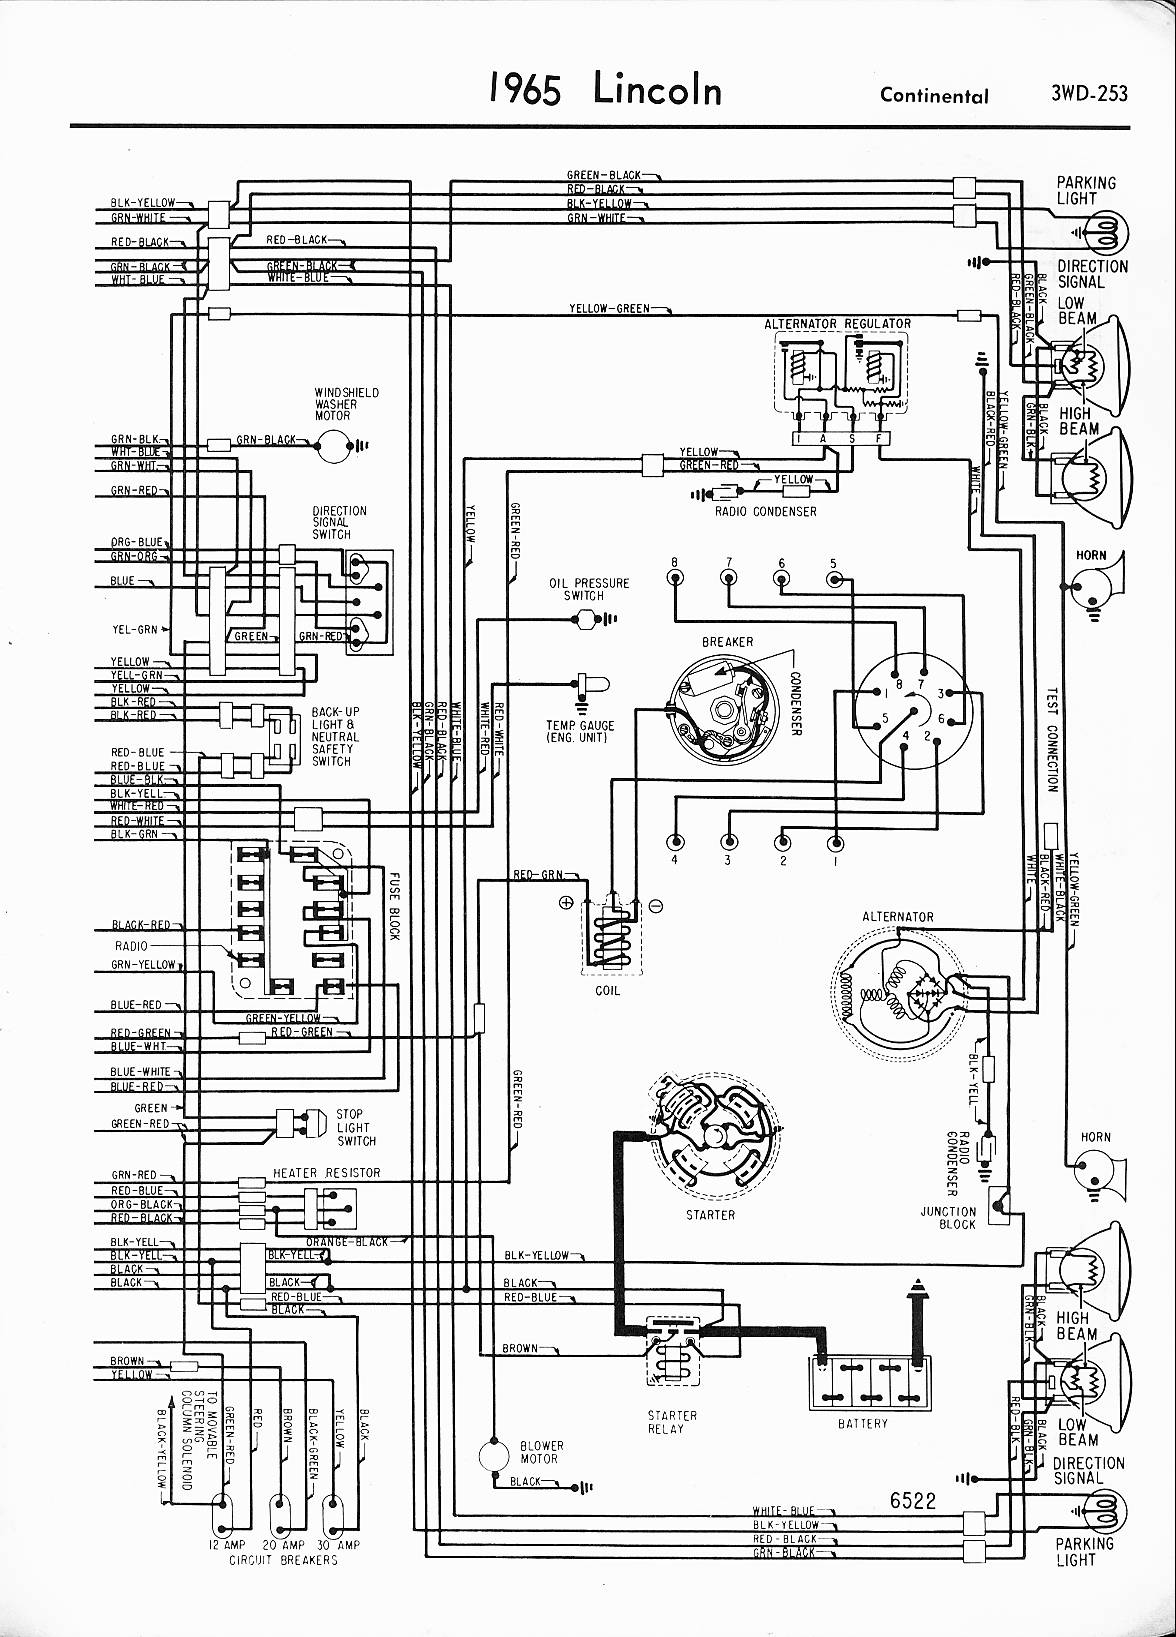 1965 Olds 442 Wiring Diagram Trusted Diagrams 1969 Oldsmobile Toronado Lincoln 1957